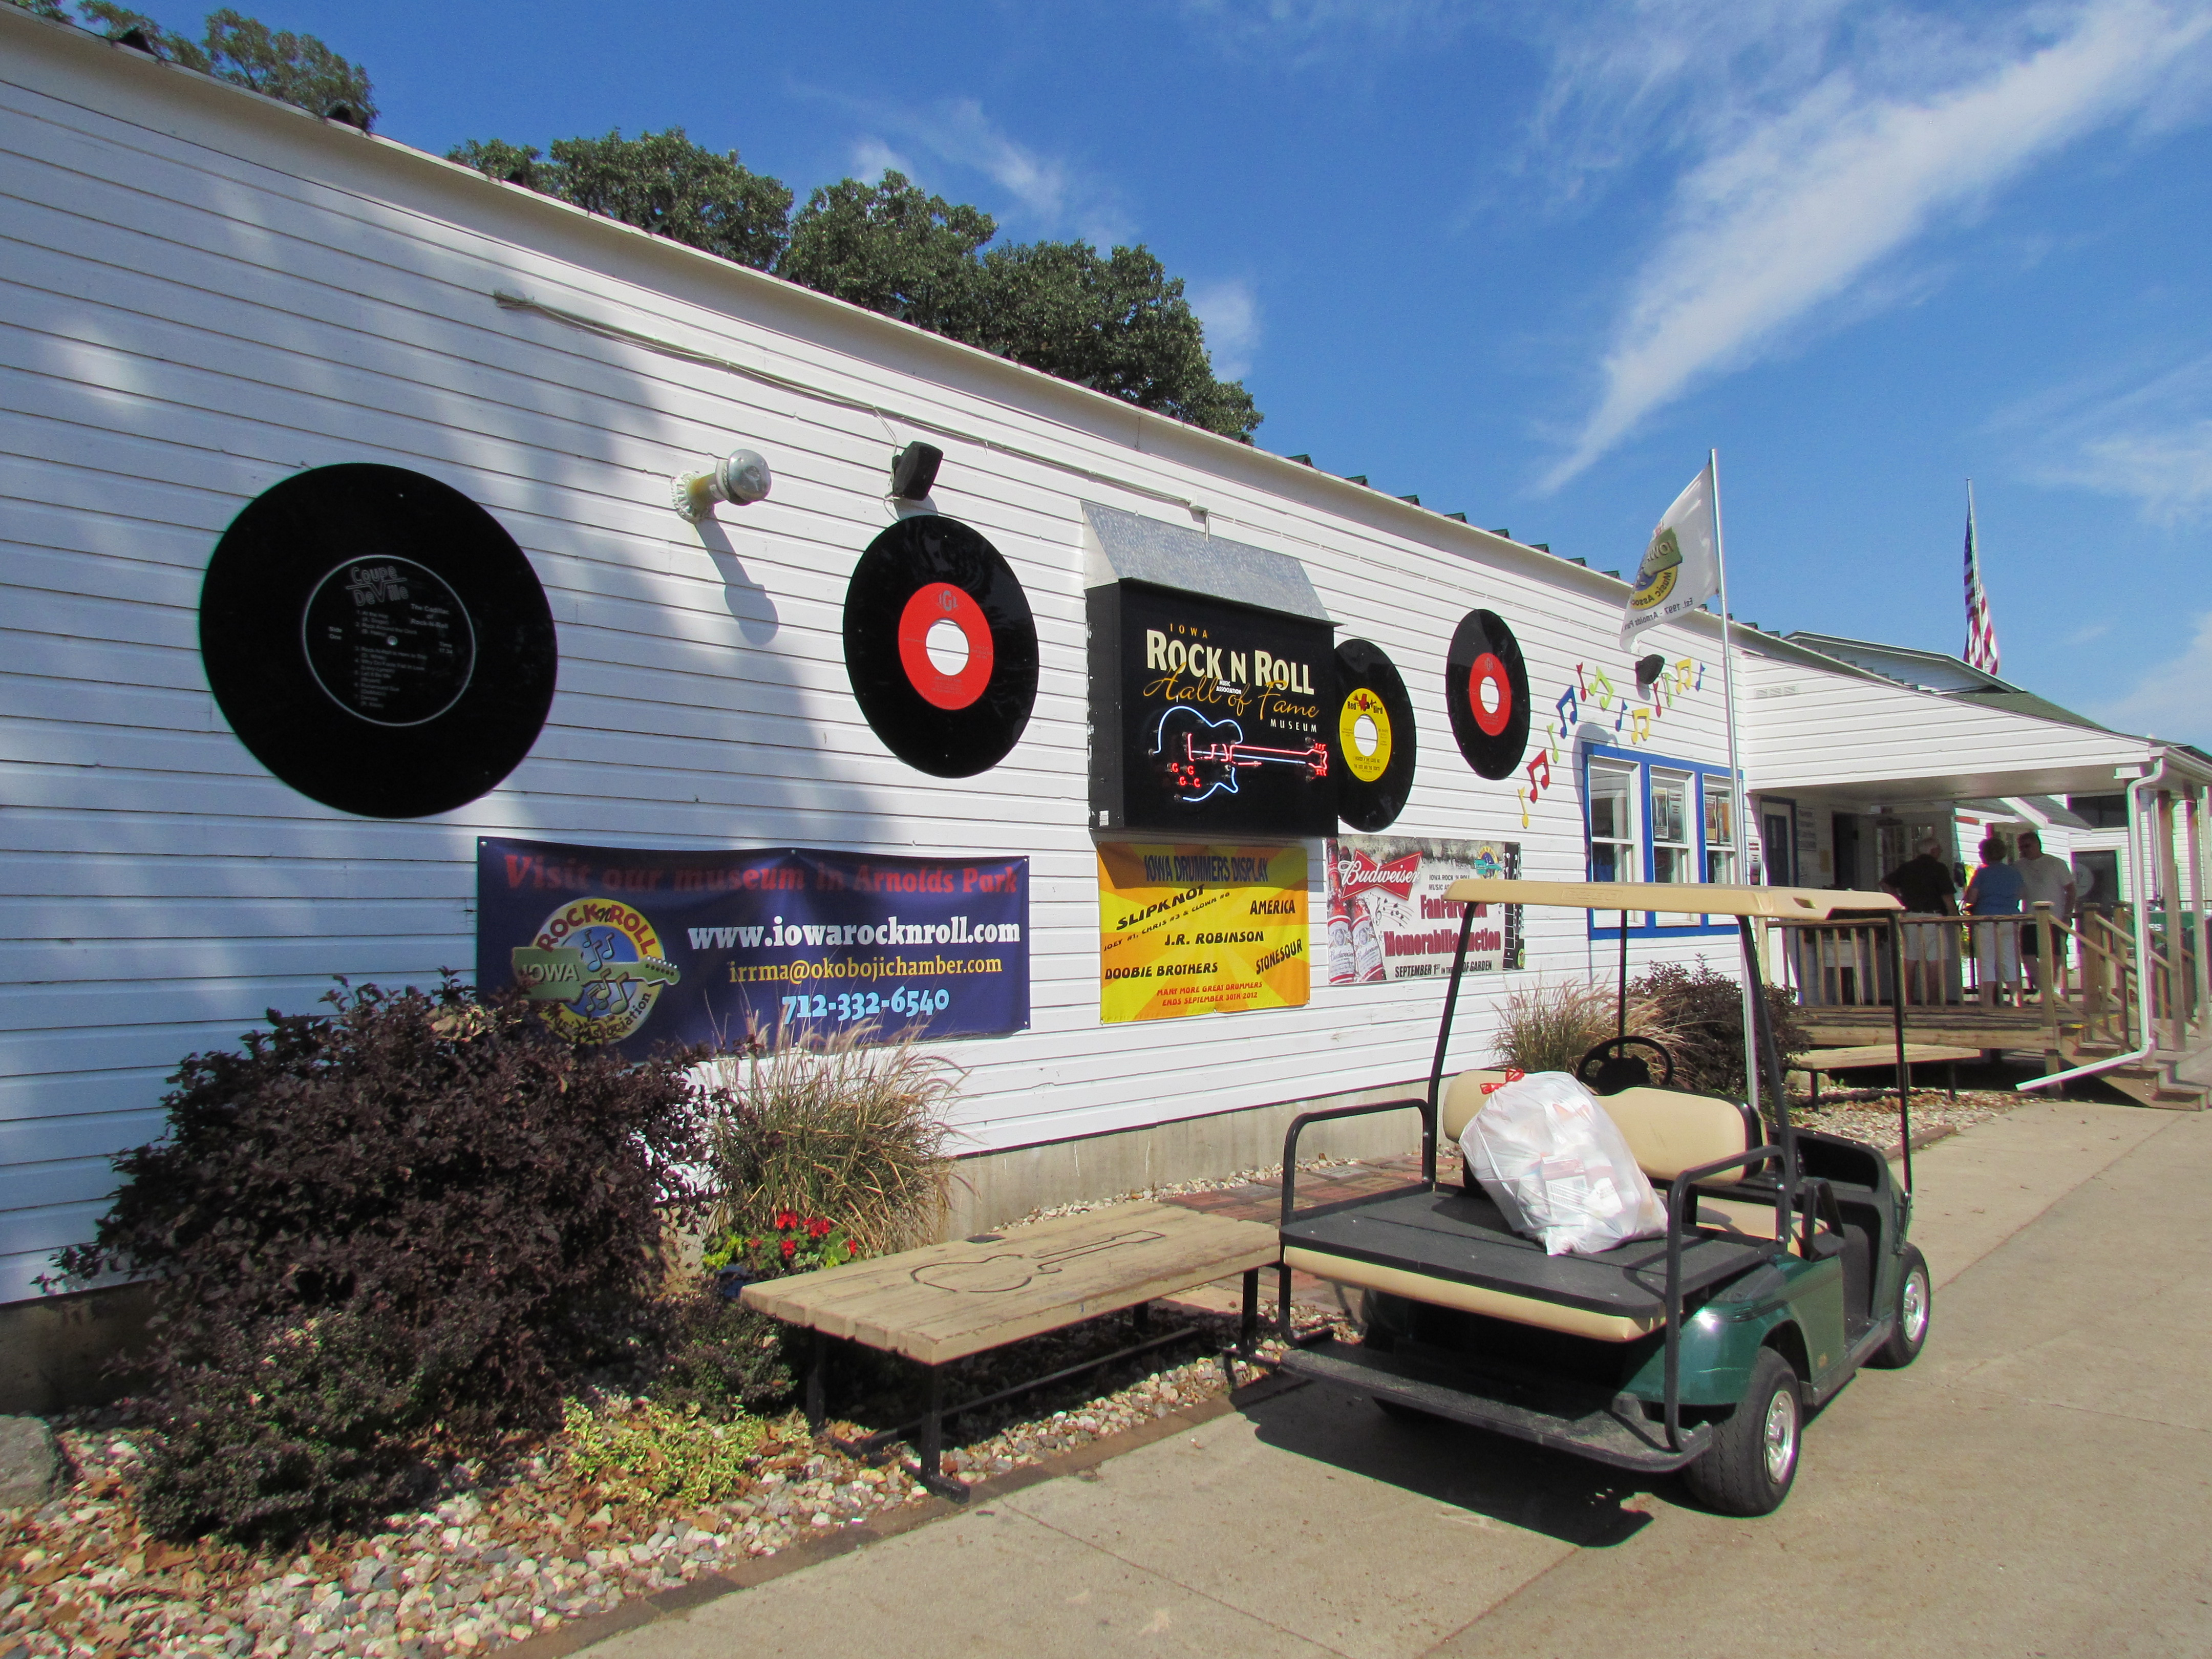 Iowa Rock n Roll Hall of Fame and More! – livinglifejoyfully